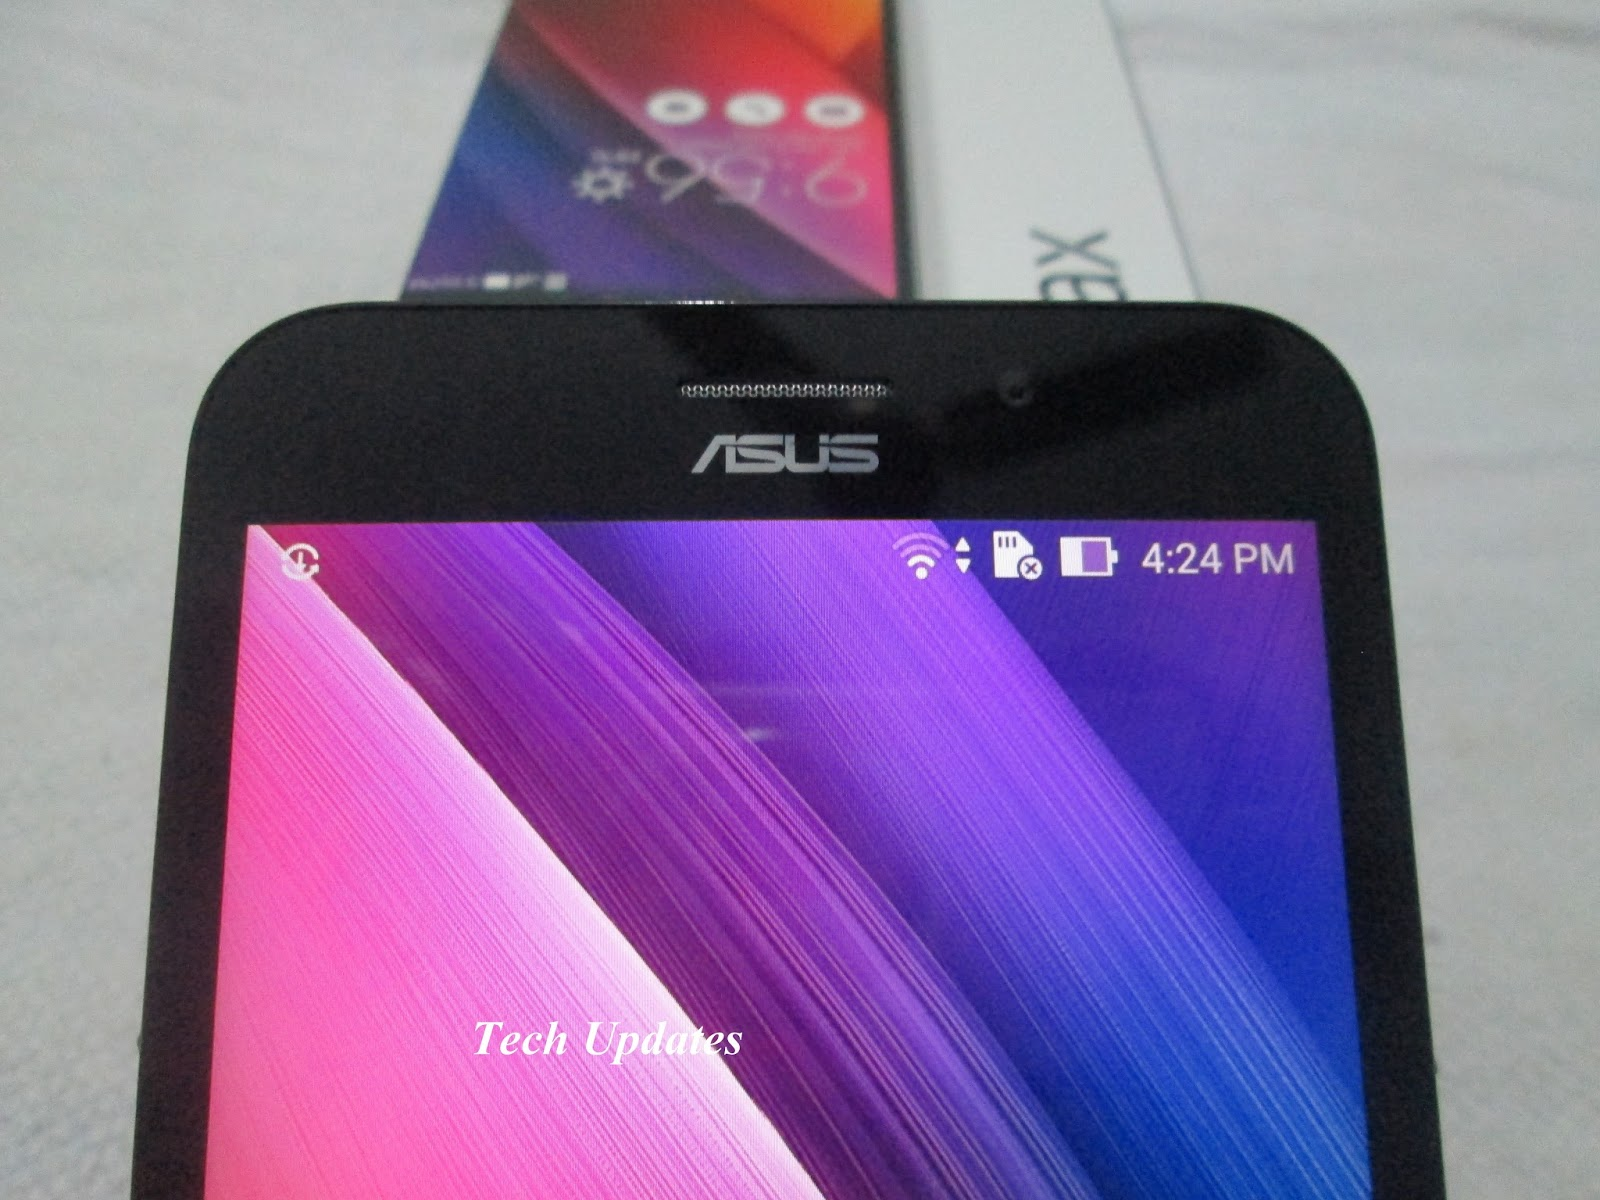 Asus Zenfone Max Photo Gallery Tech Updates Usb Cable Wiring Diagram Otg Cabe User Manual Feature A 55 Inch 1280 X 720 Pixels Display With Corning Gorilla Glass 4 Protection